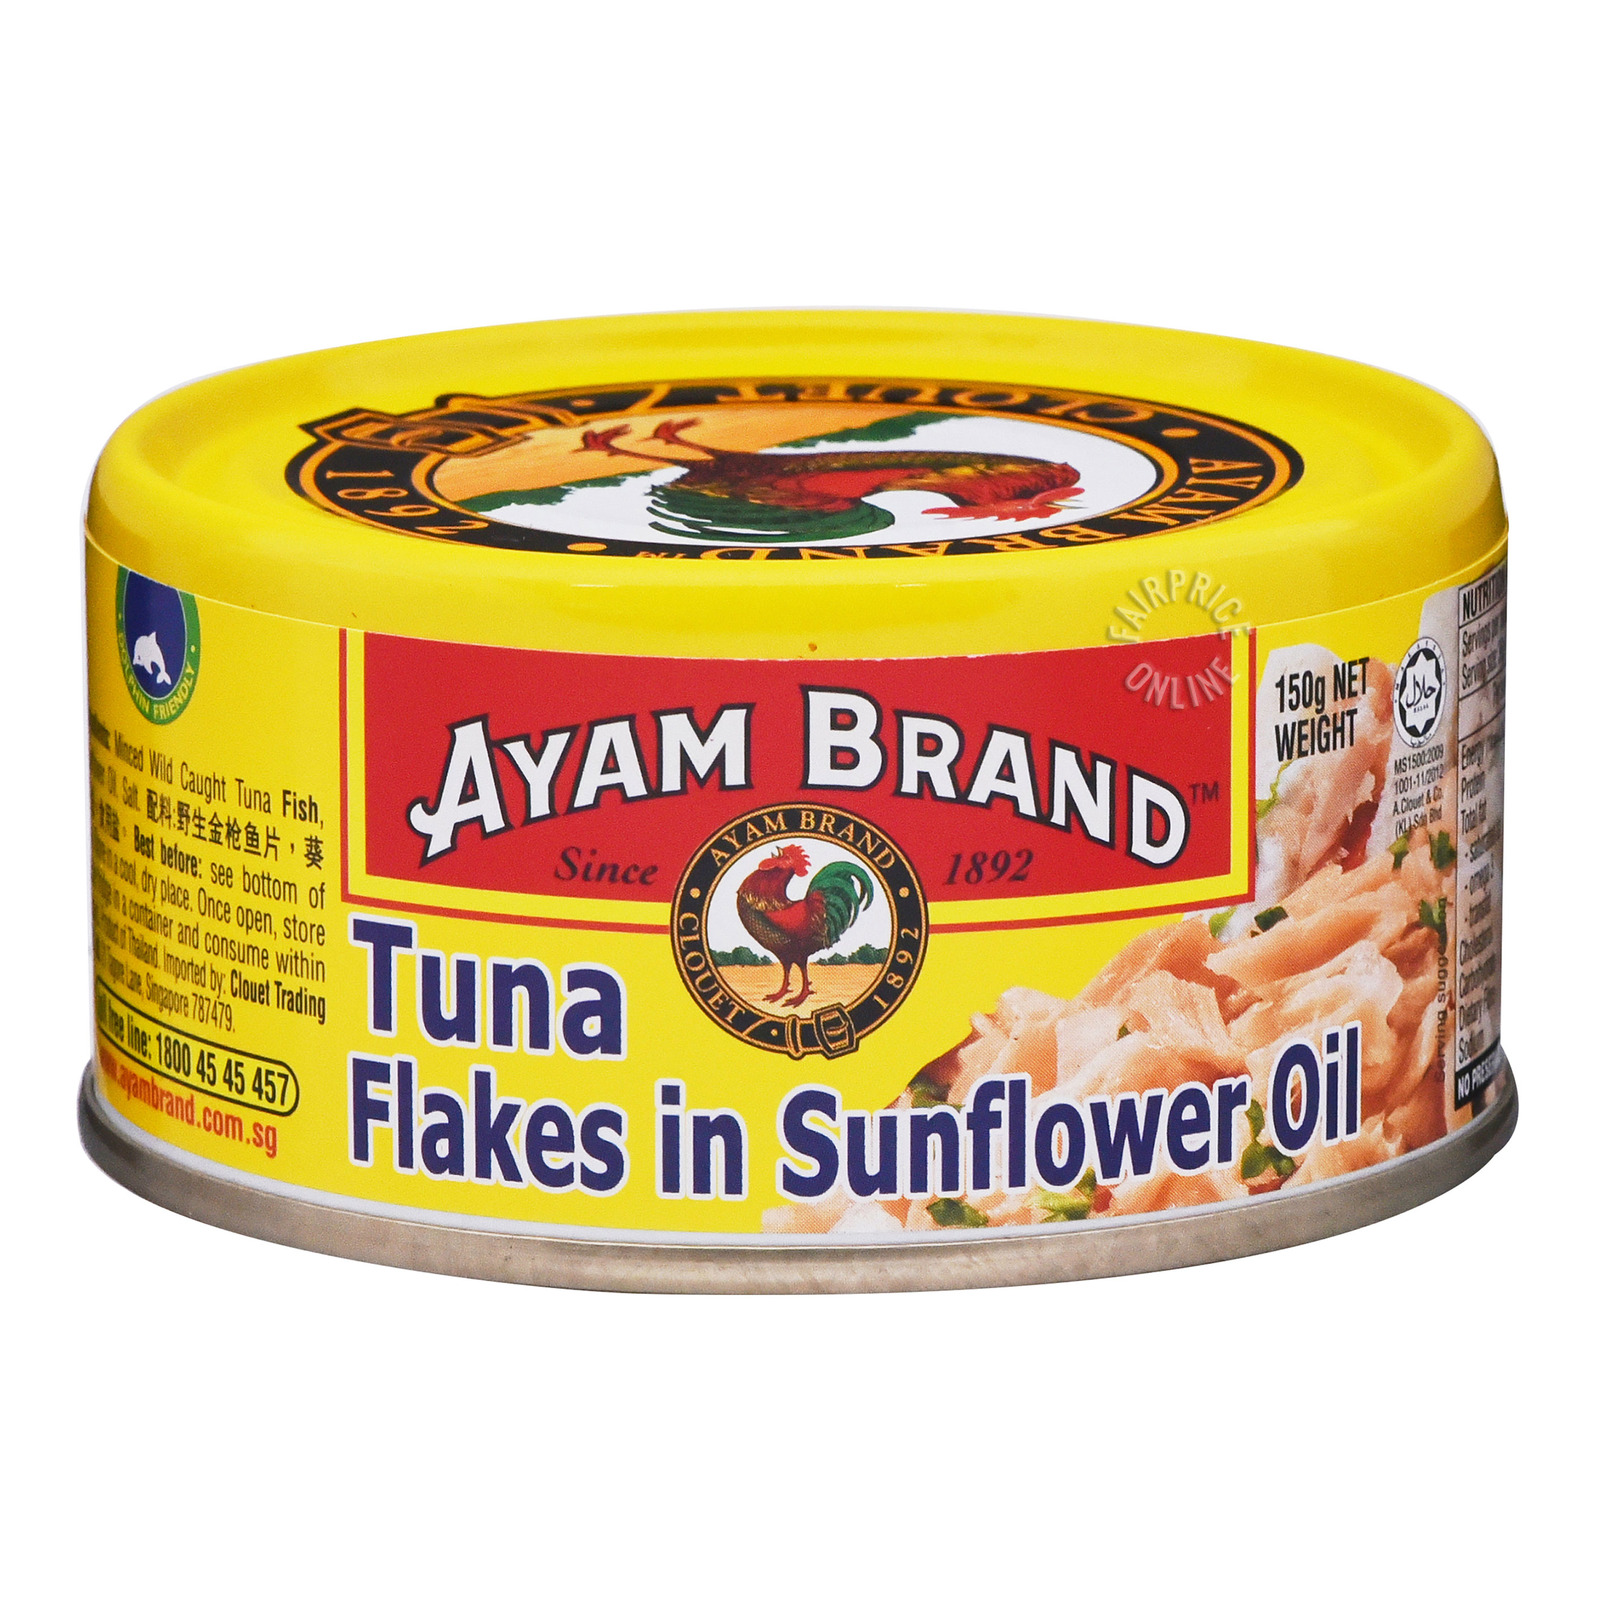 Ayam Brand Tuna Flakes - Sunflower Oil